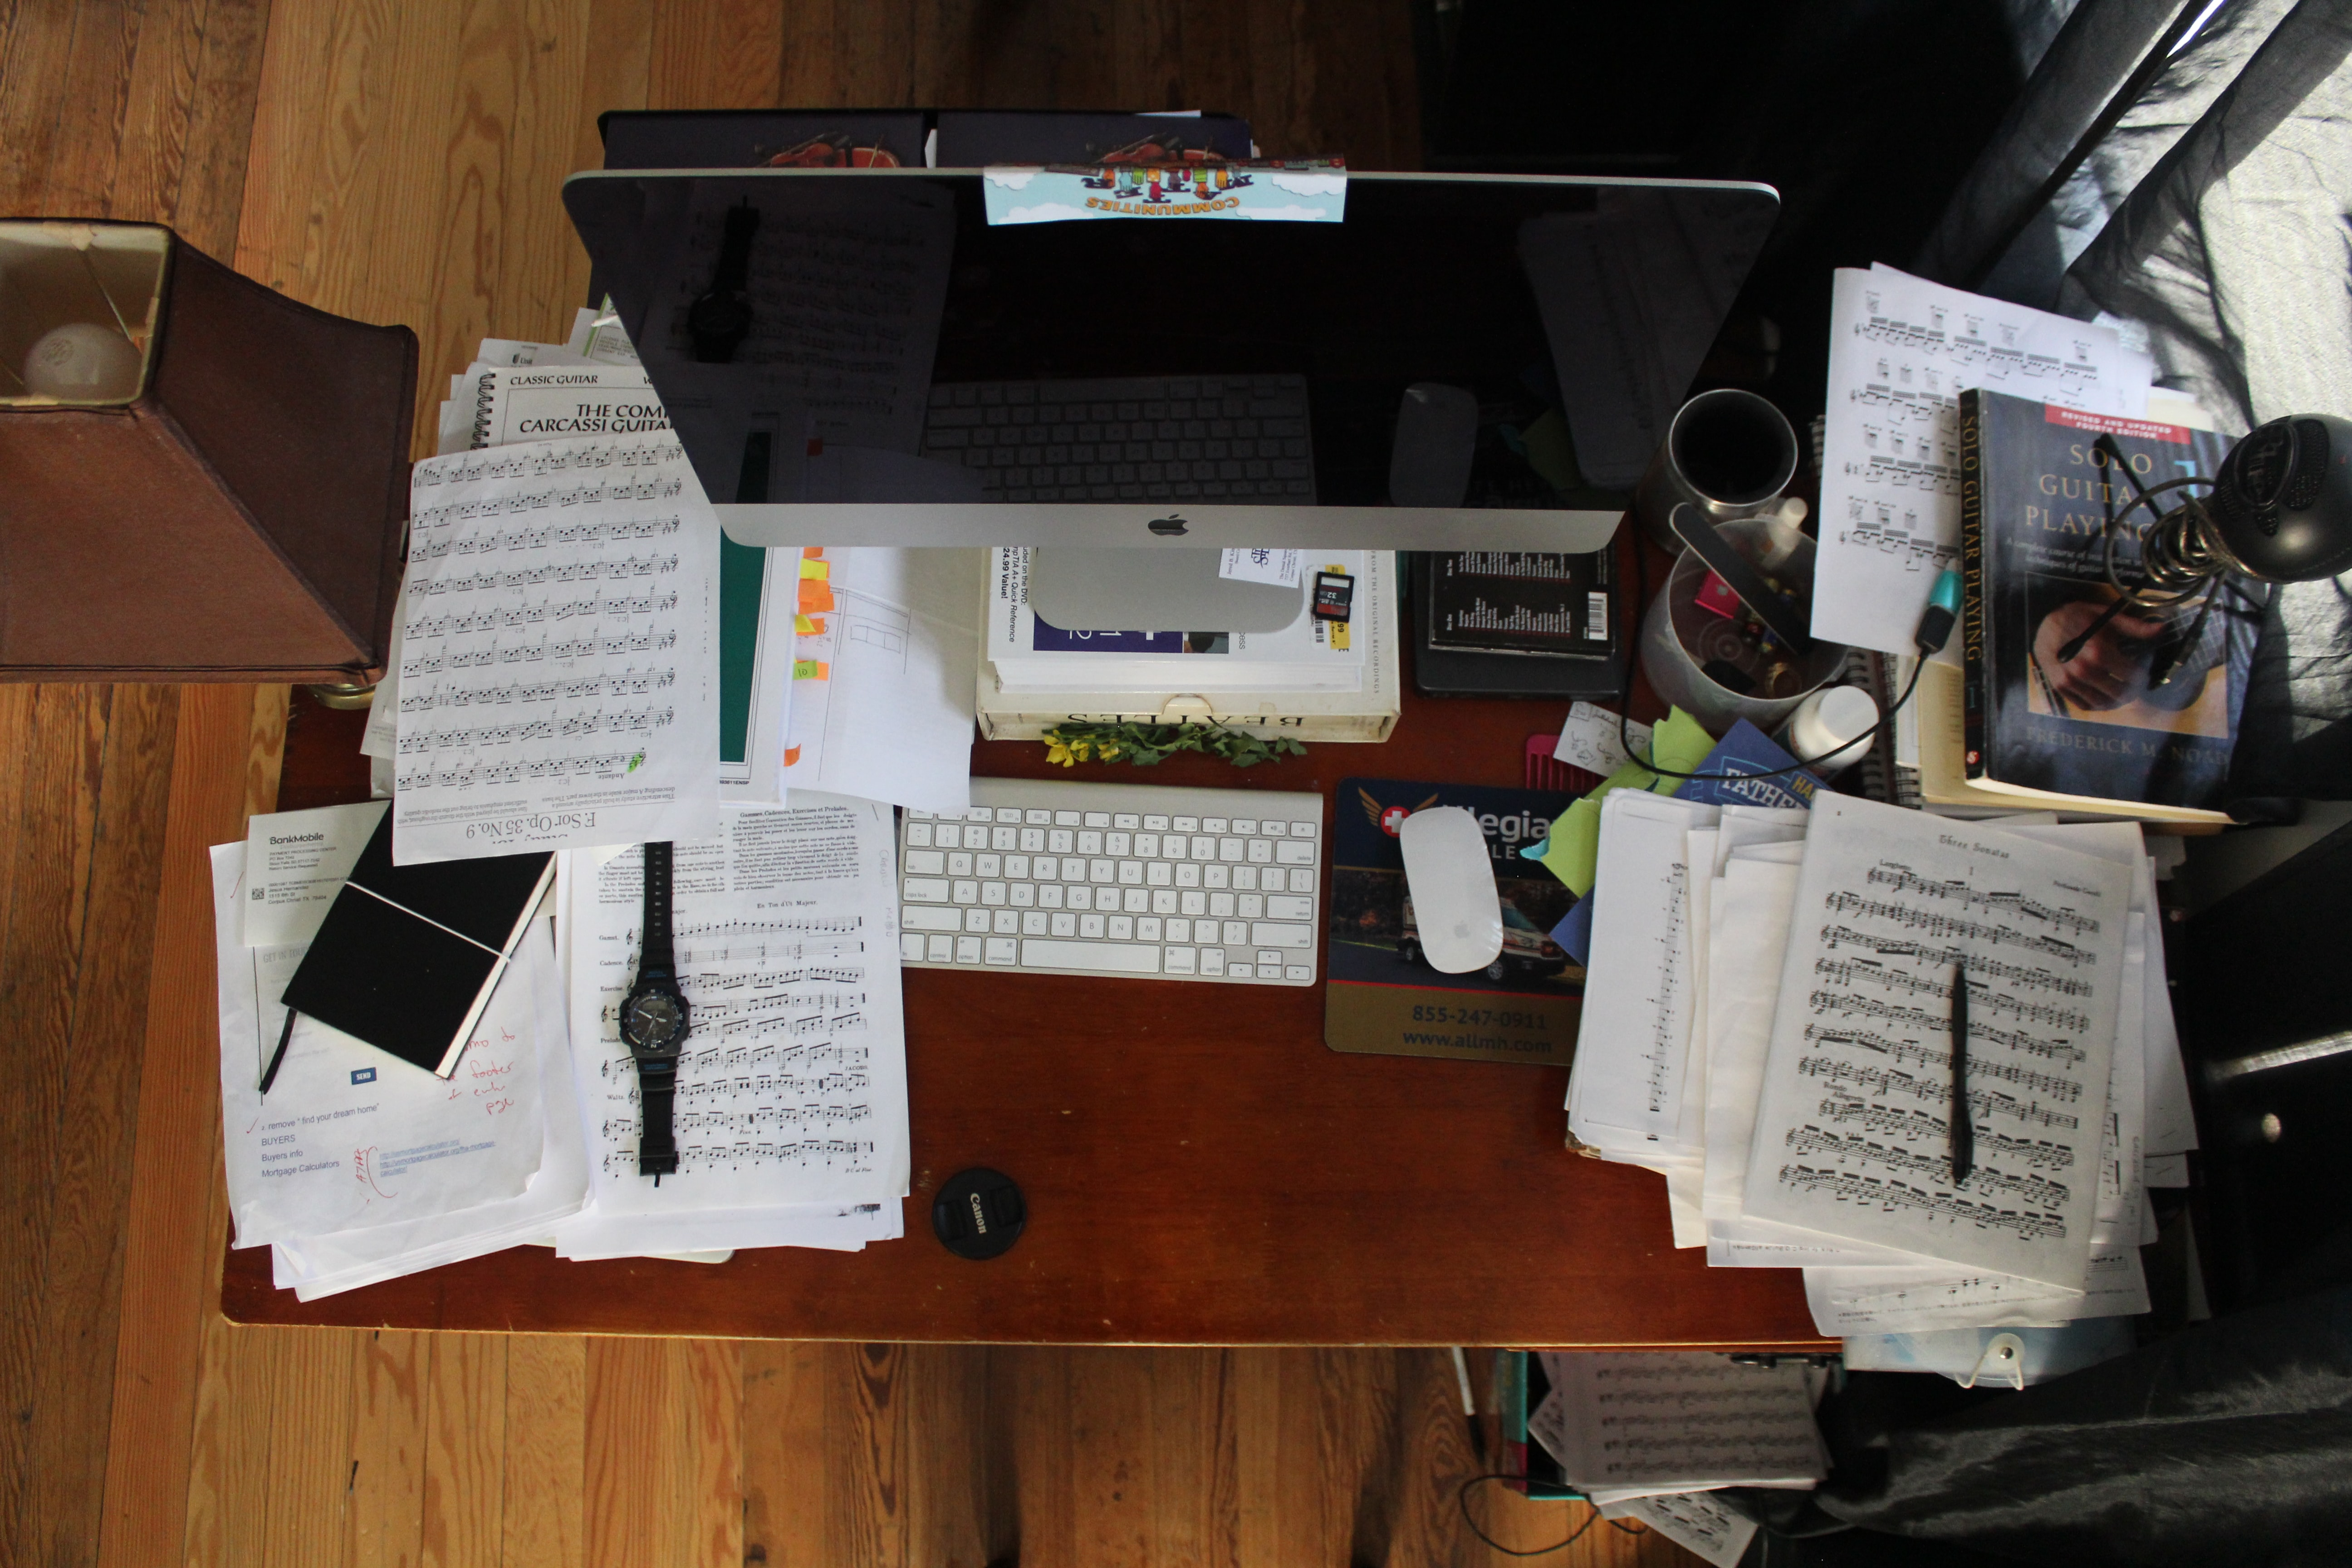 Drone view of messy desk with piles of sheet music and Mac desktop computer and keyboard